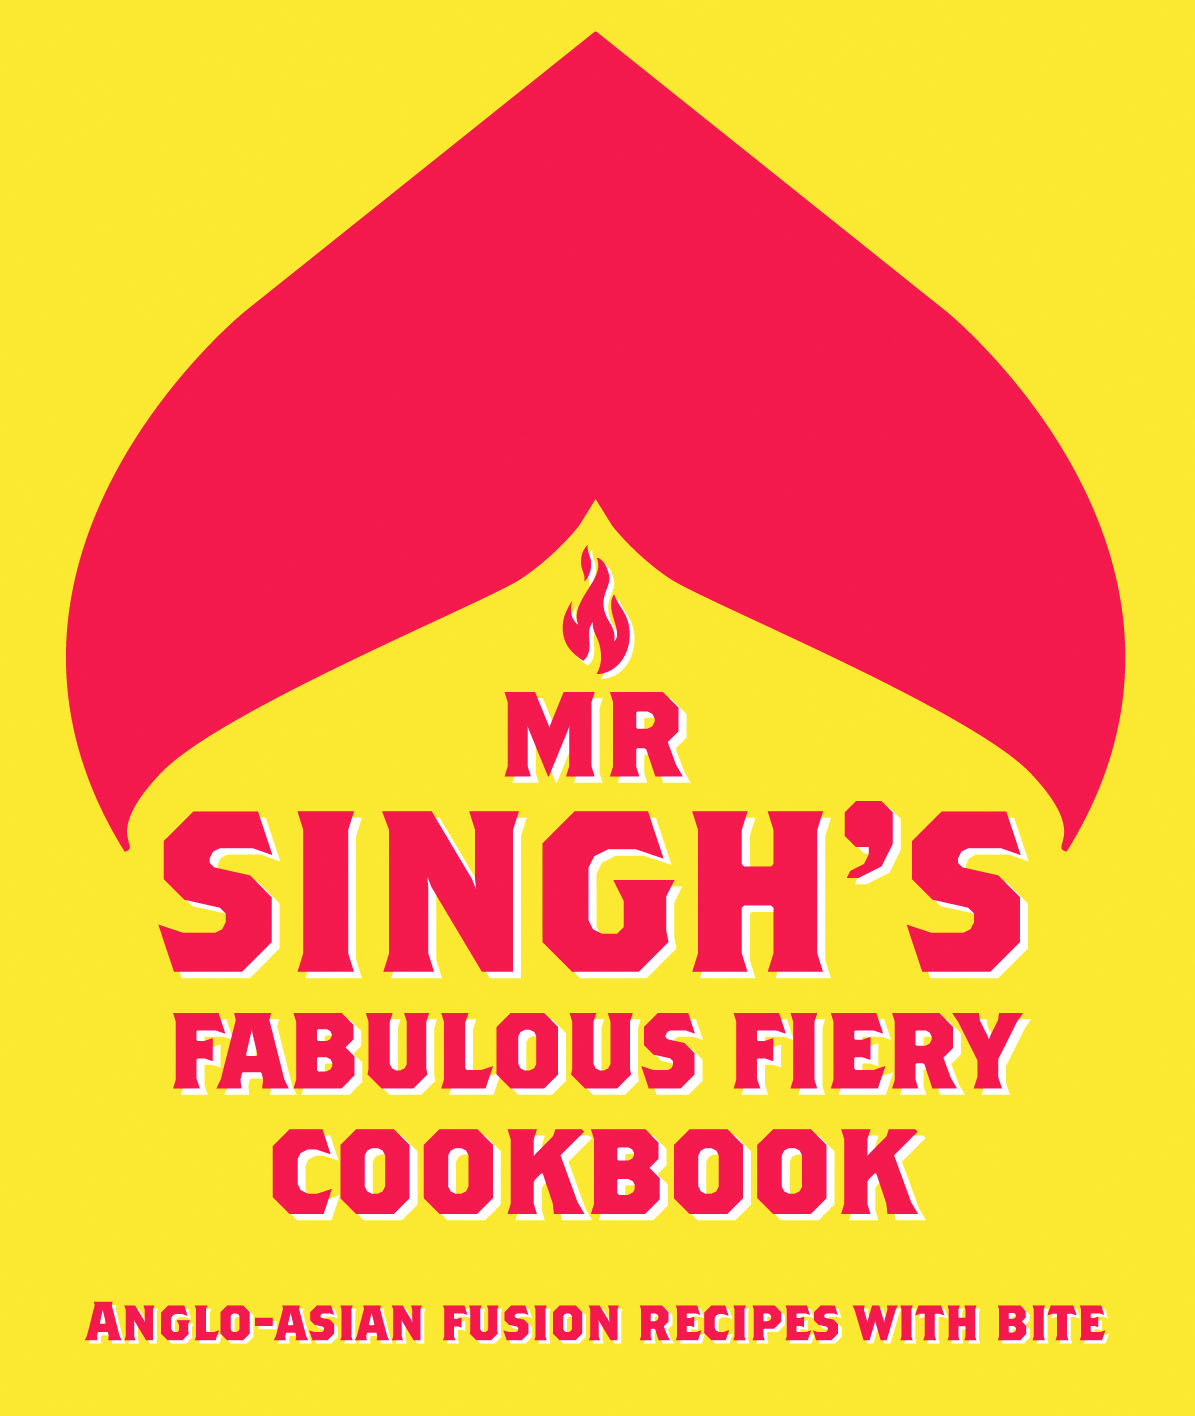 Mr Singh's Fabulous Fiery Cookbook